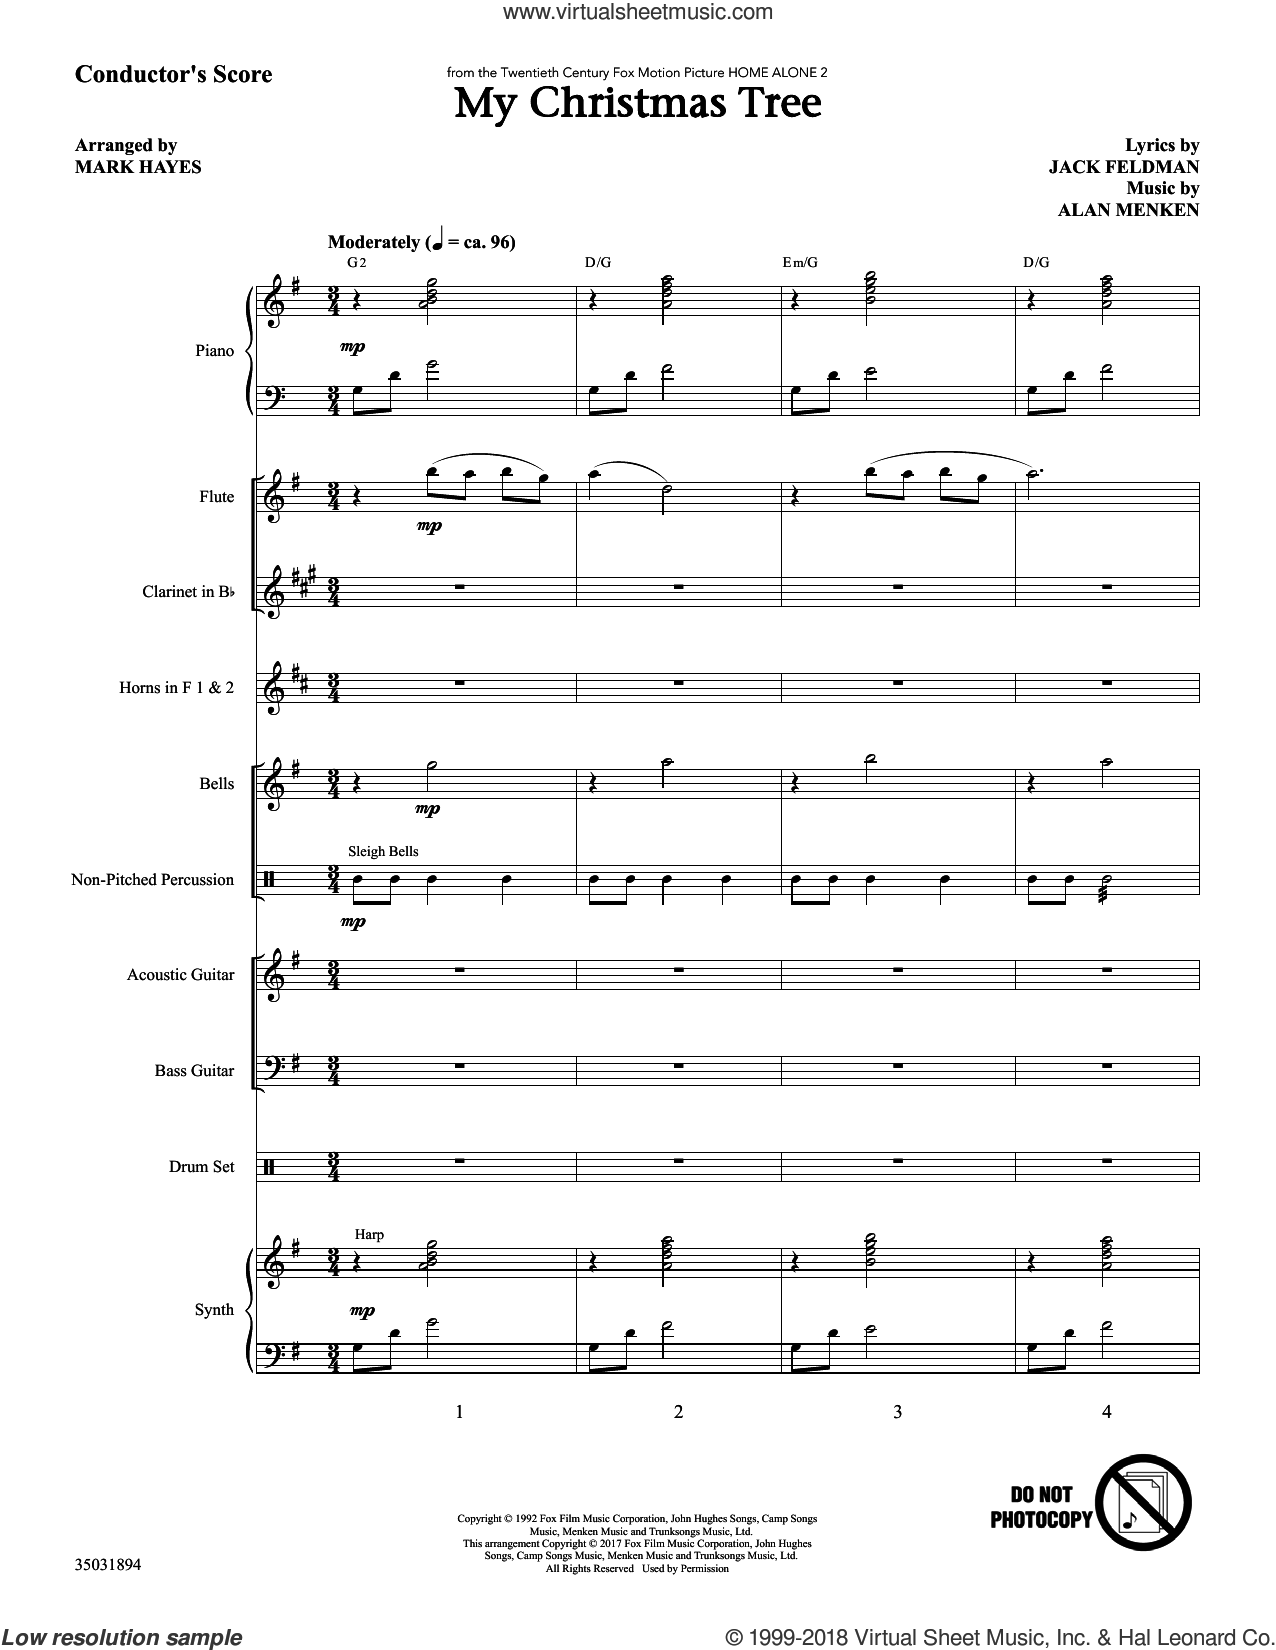 My Christmas Tree (COMPLETE) sheet music for orchestra/band by Alan Menken, Jack Feldman and Mark Hayes, intermediate skill level